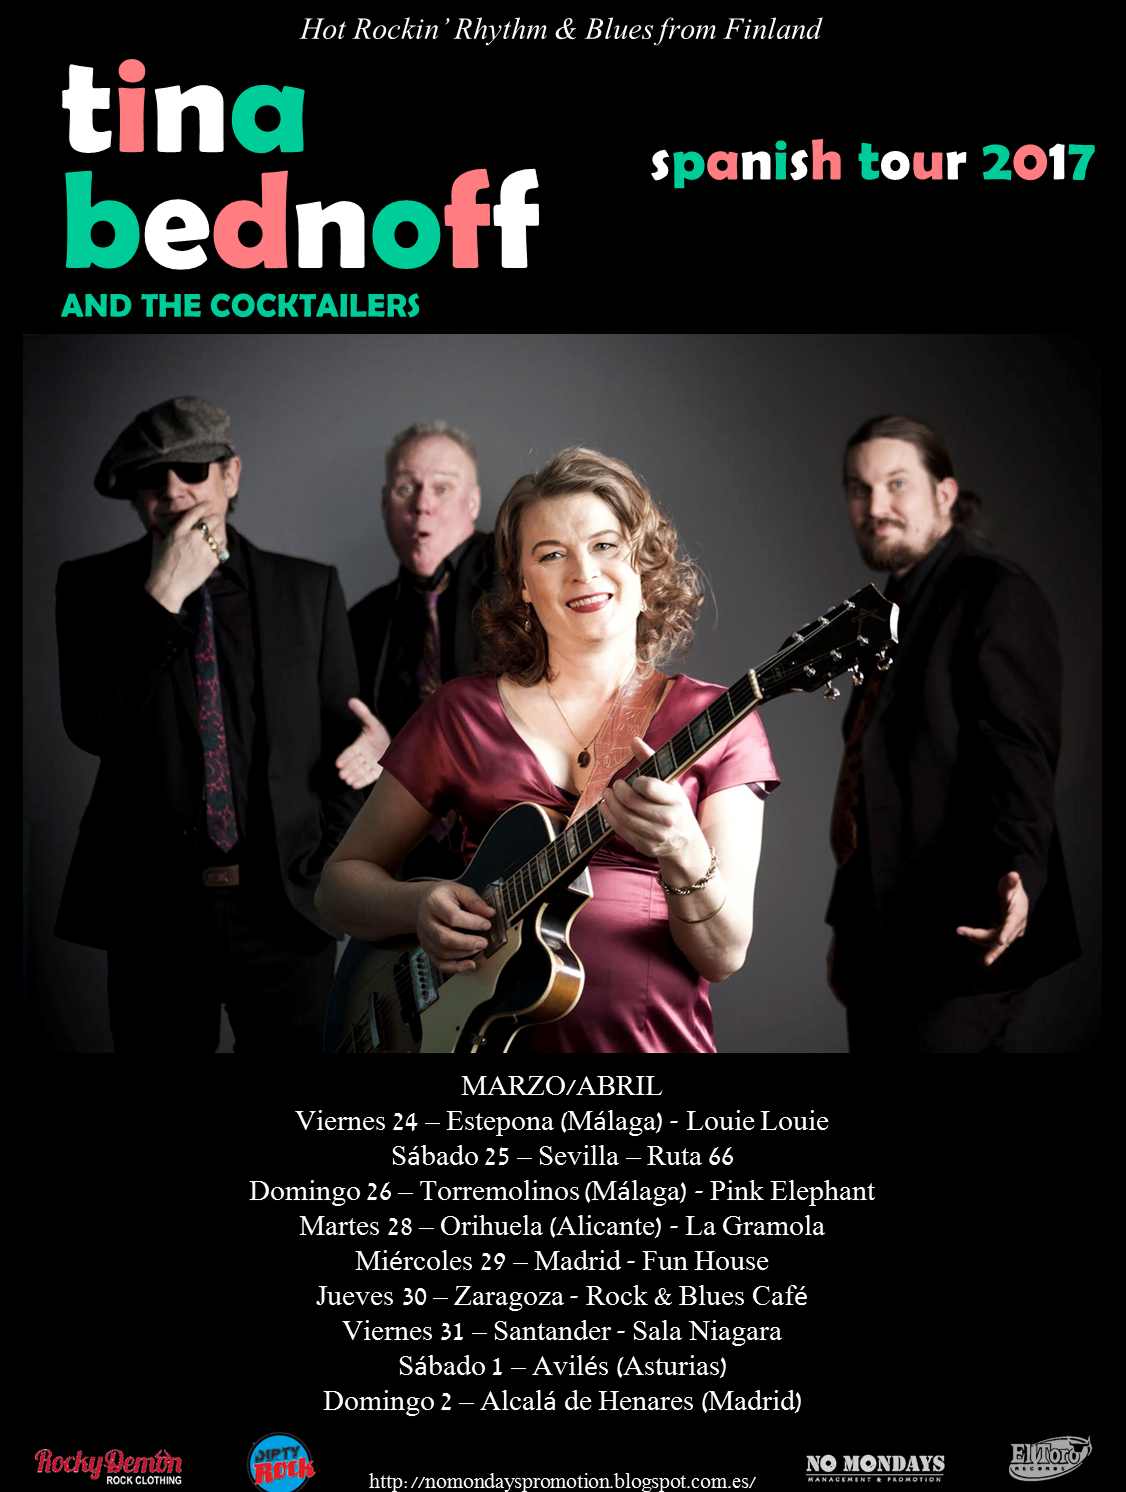 Tina Bednoff & The Cocktailers - Spanish Tour Mar/Ab 2017